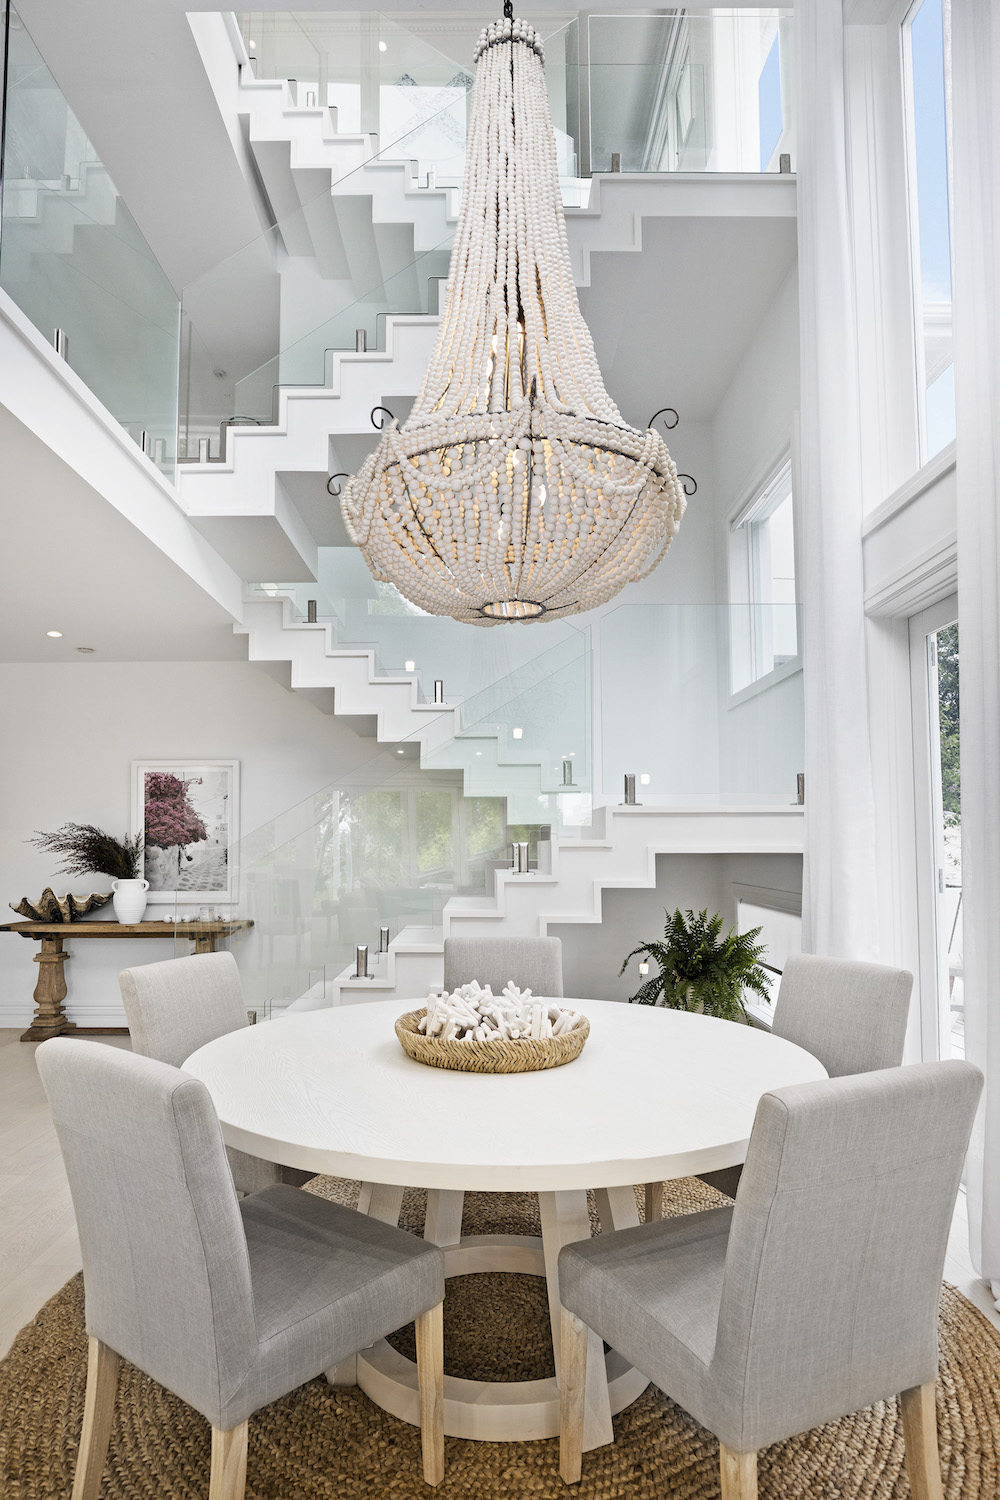 Dining space and open stairwell